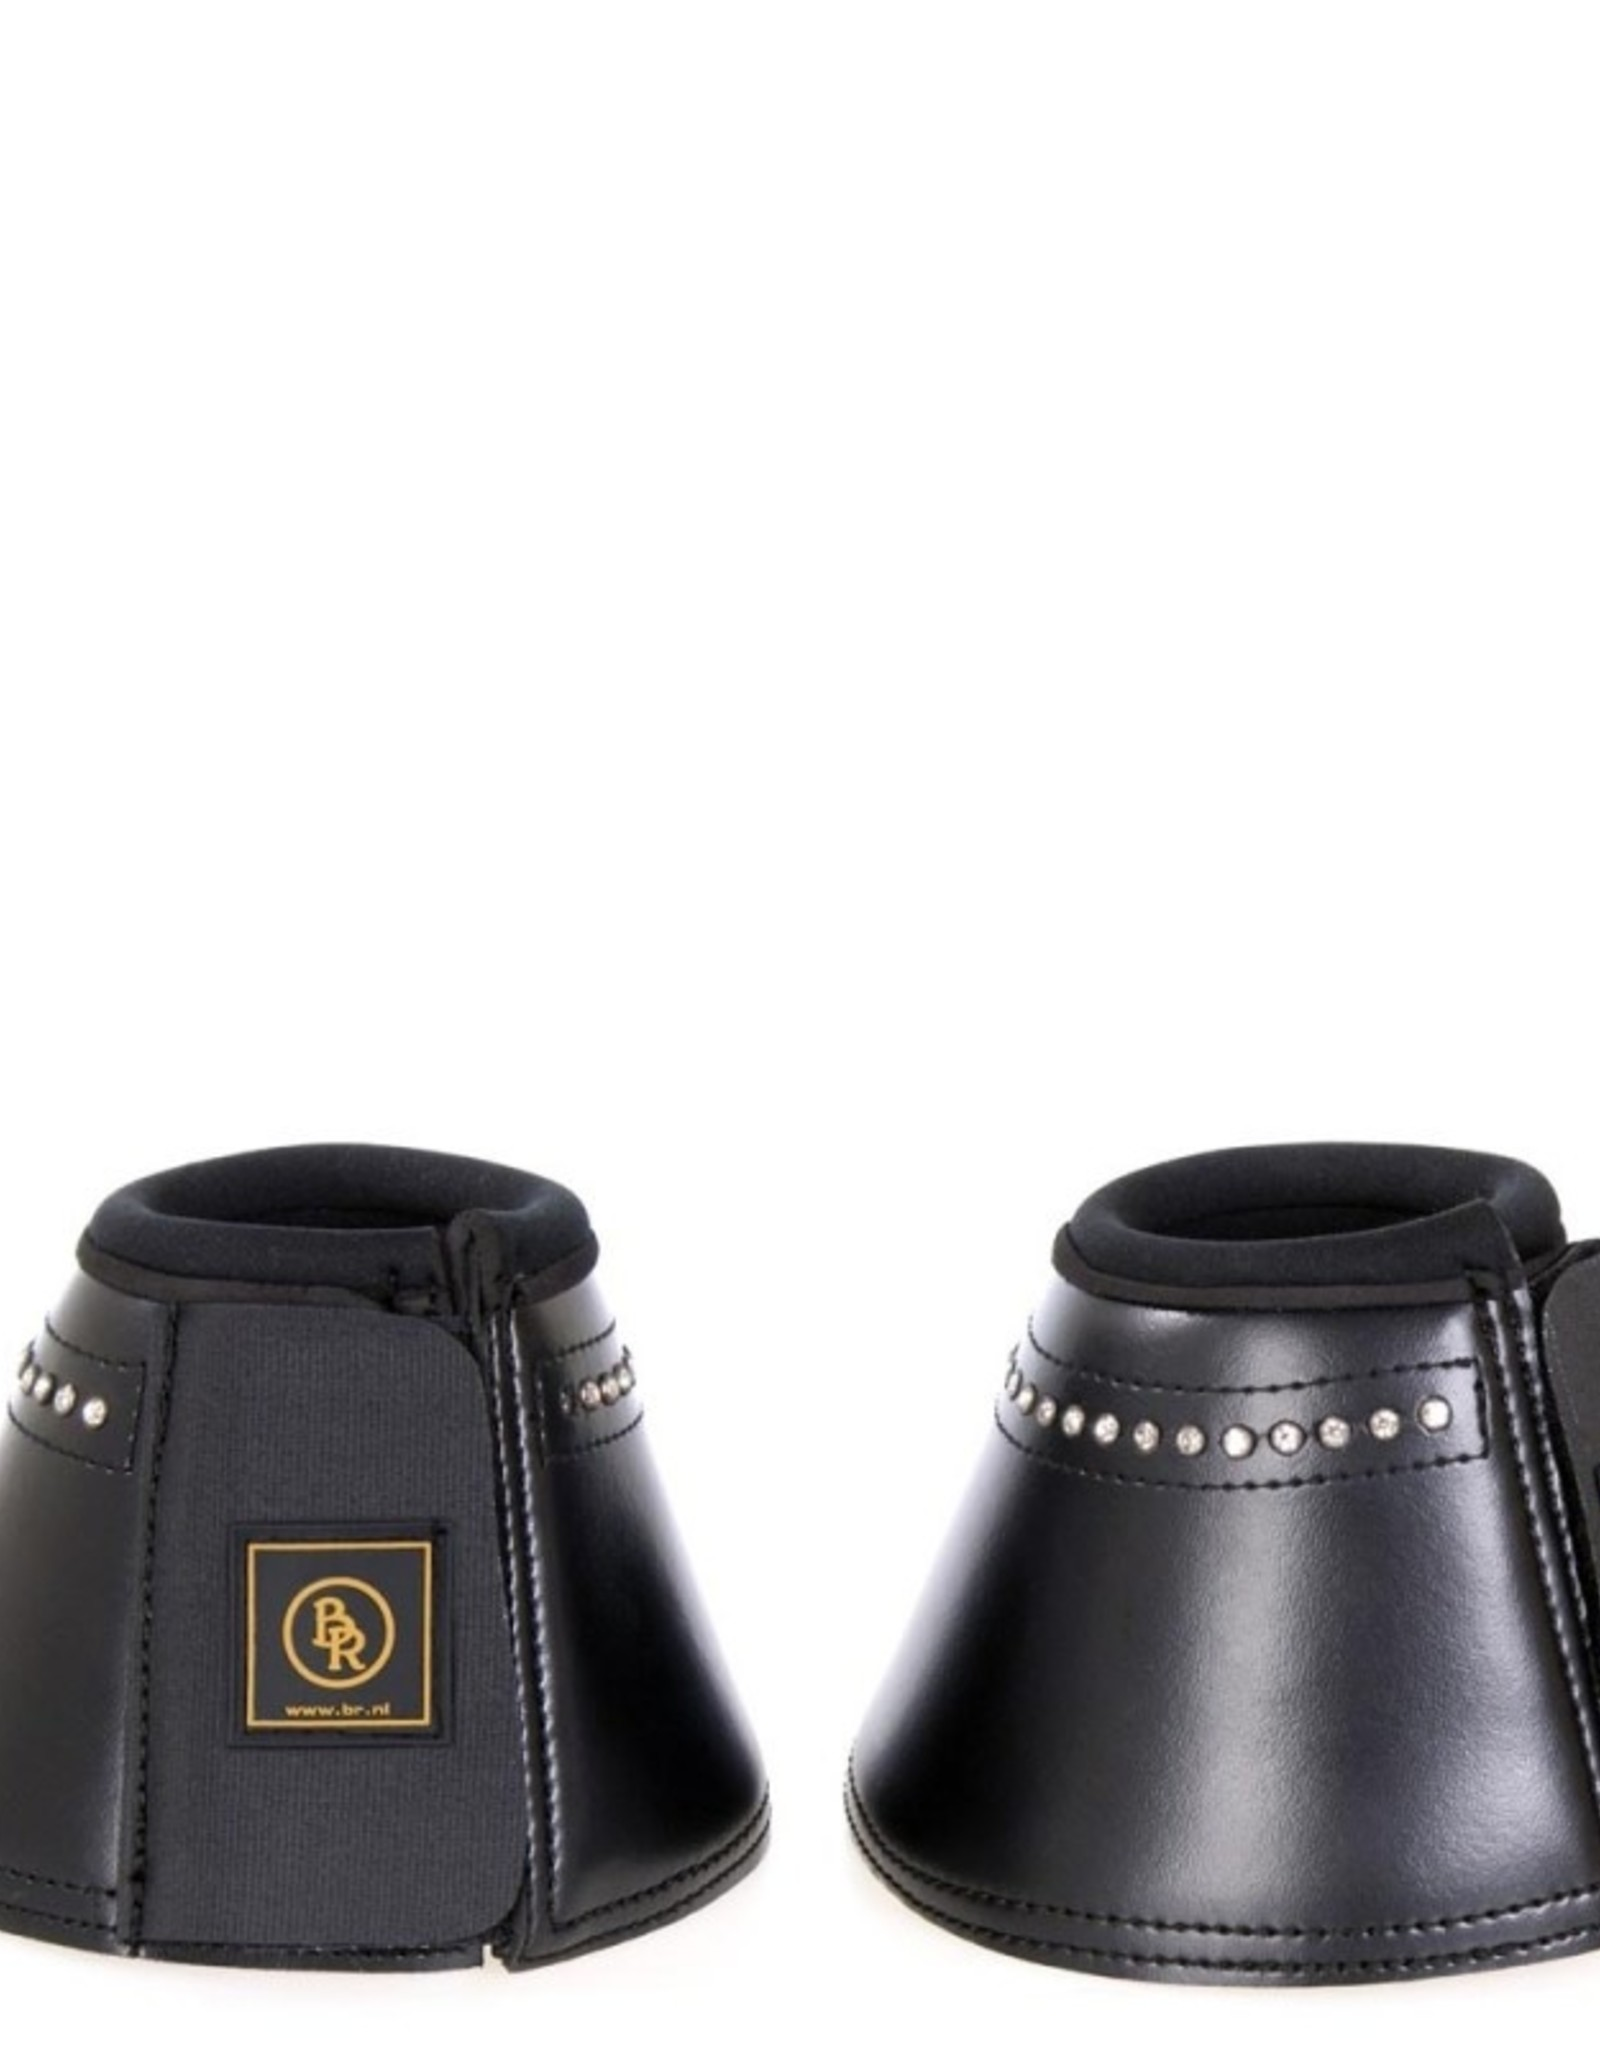 BR GLAMOUR OVERREACH BELL BOOTS